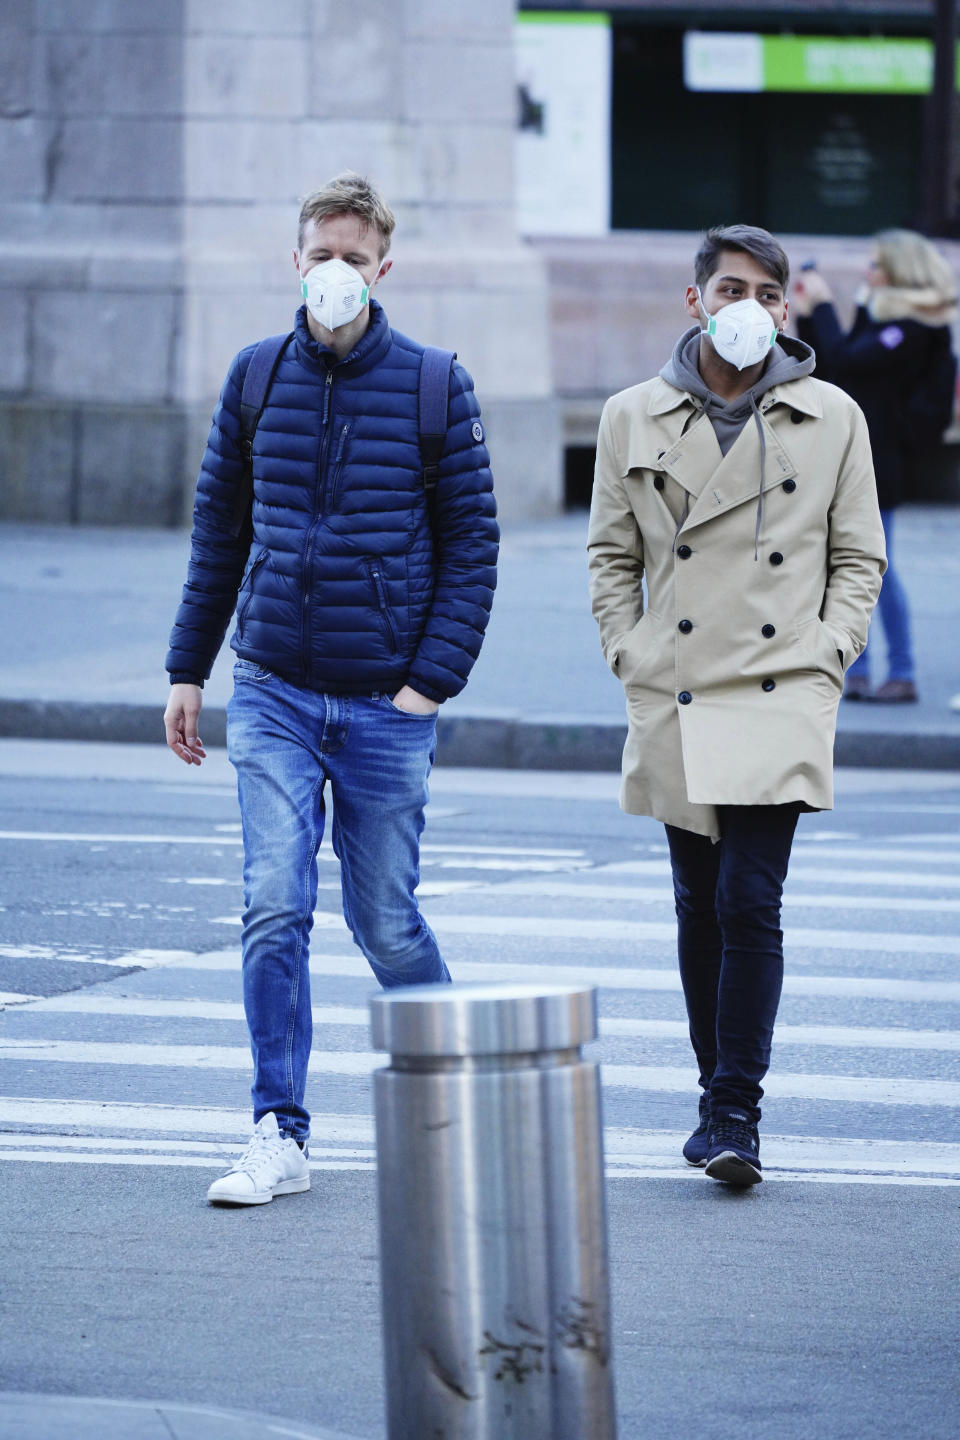 Photo shows two men walking across a street wearing face masks.